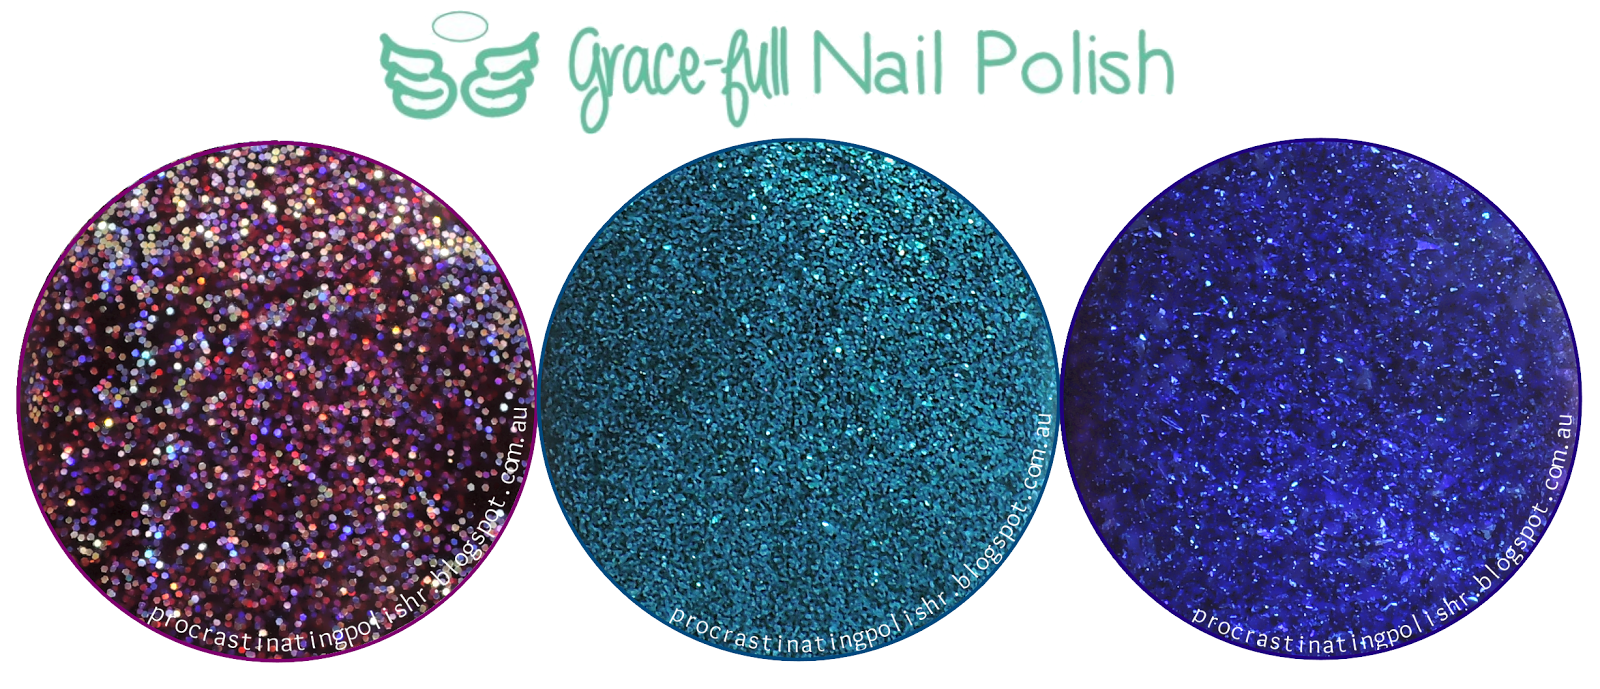 Grace-full Nail Polish Summer Nights